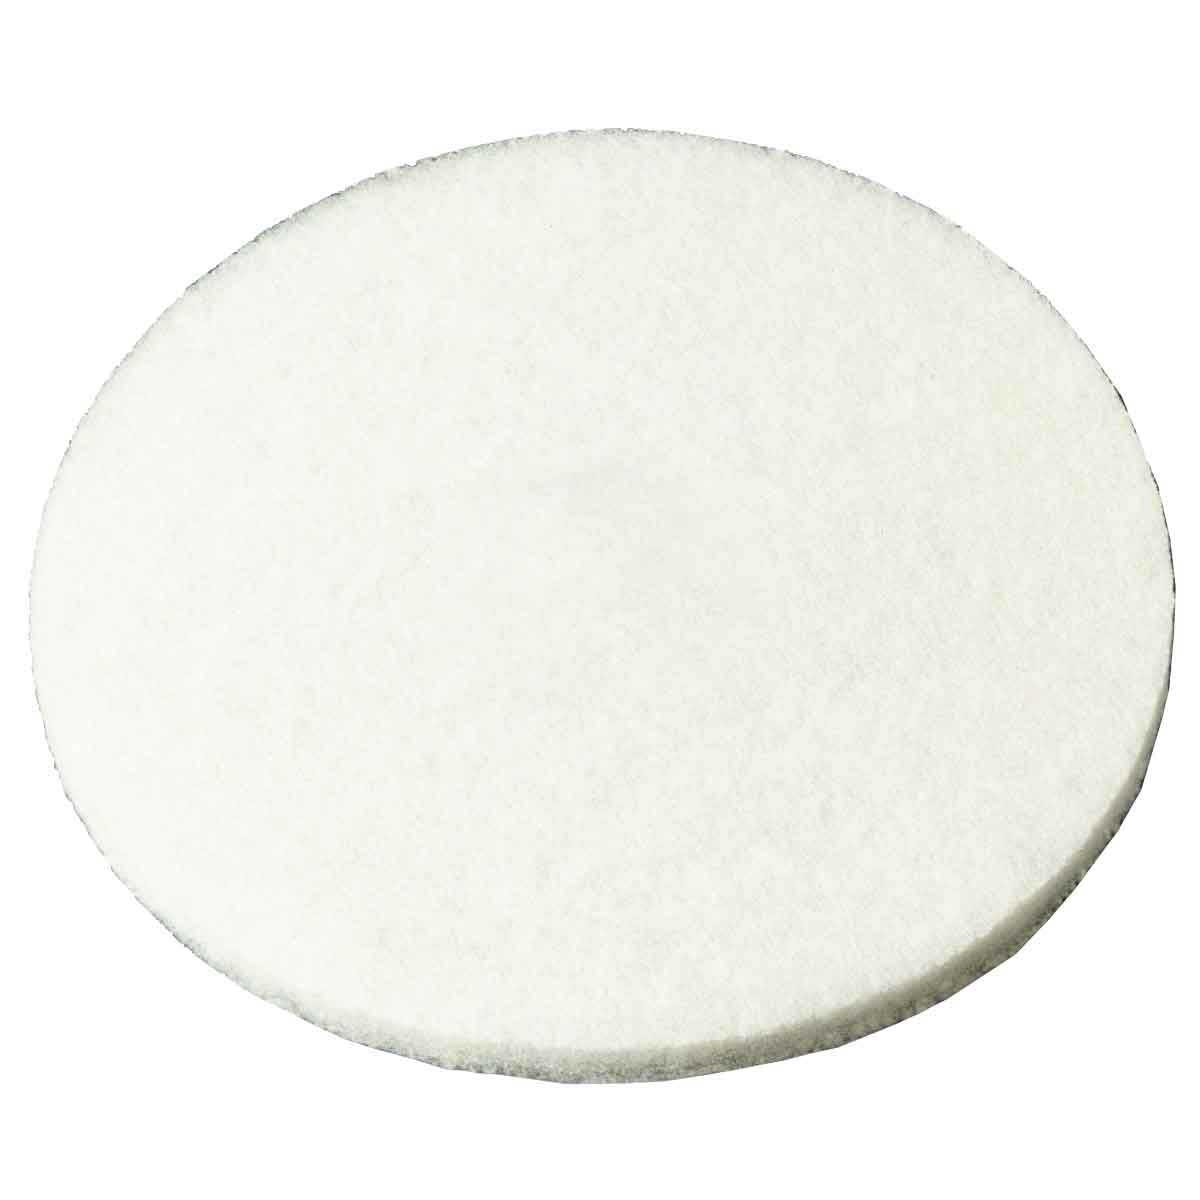 Raimondi Fine White Polishing pad